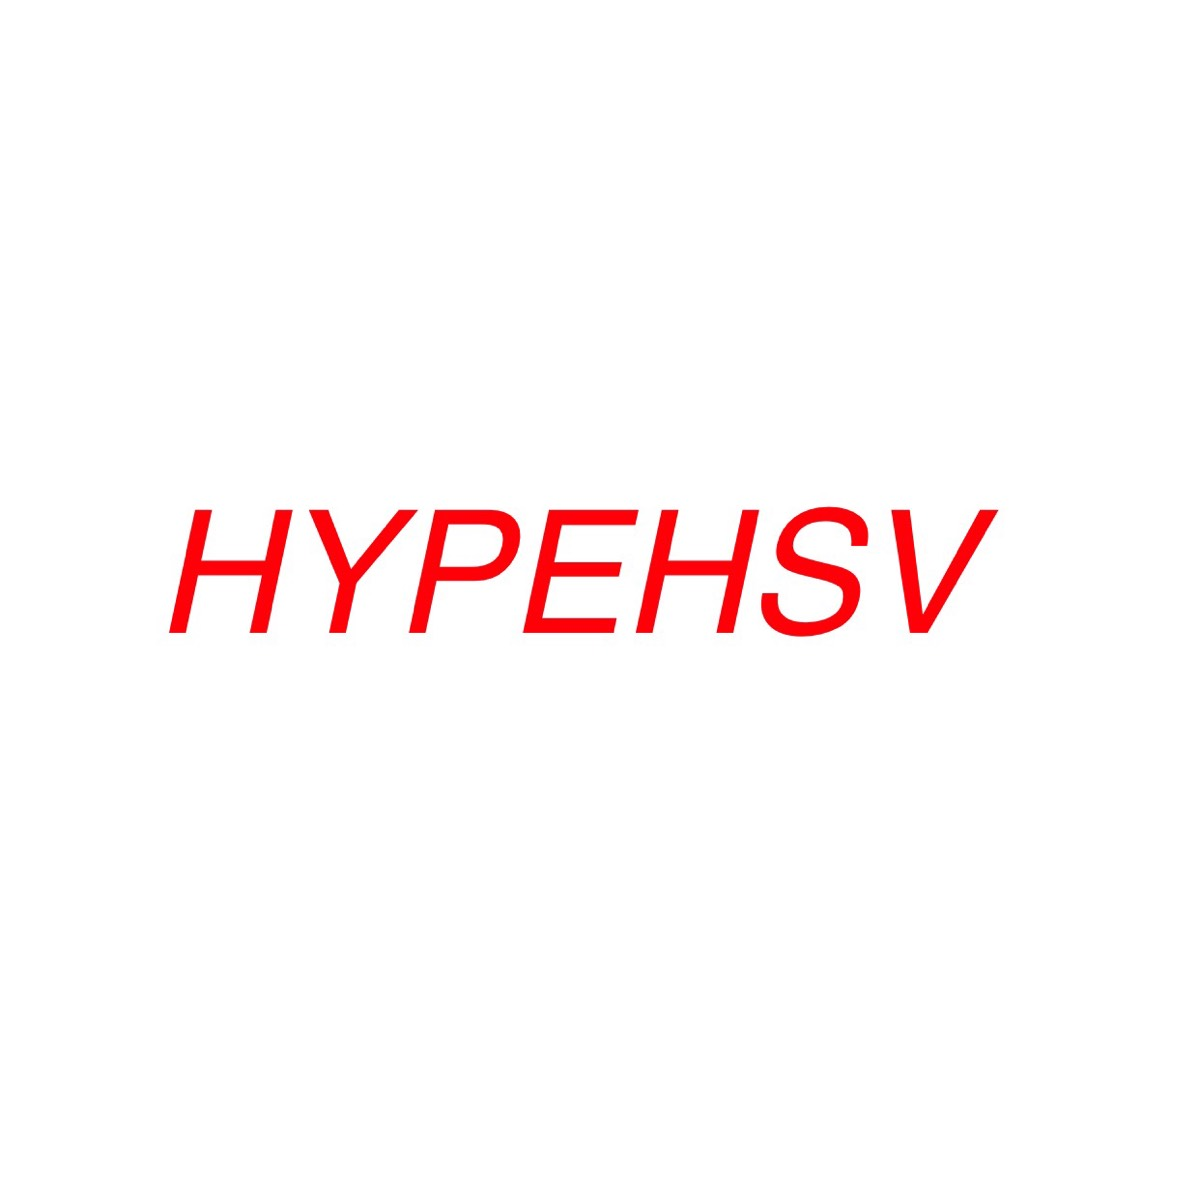 Bump profile picture for @hypehsv